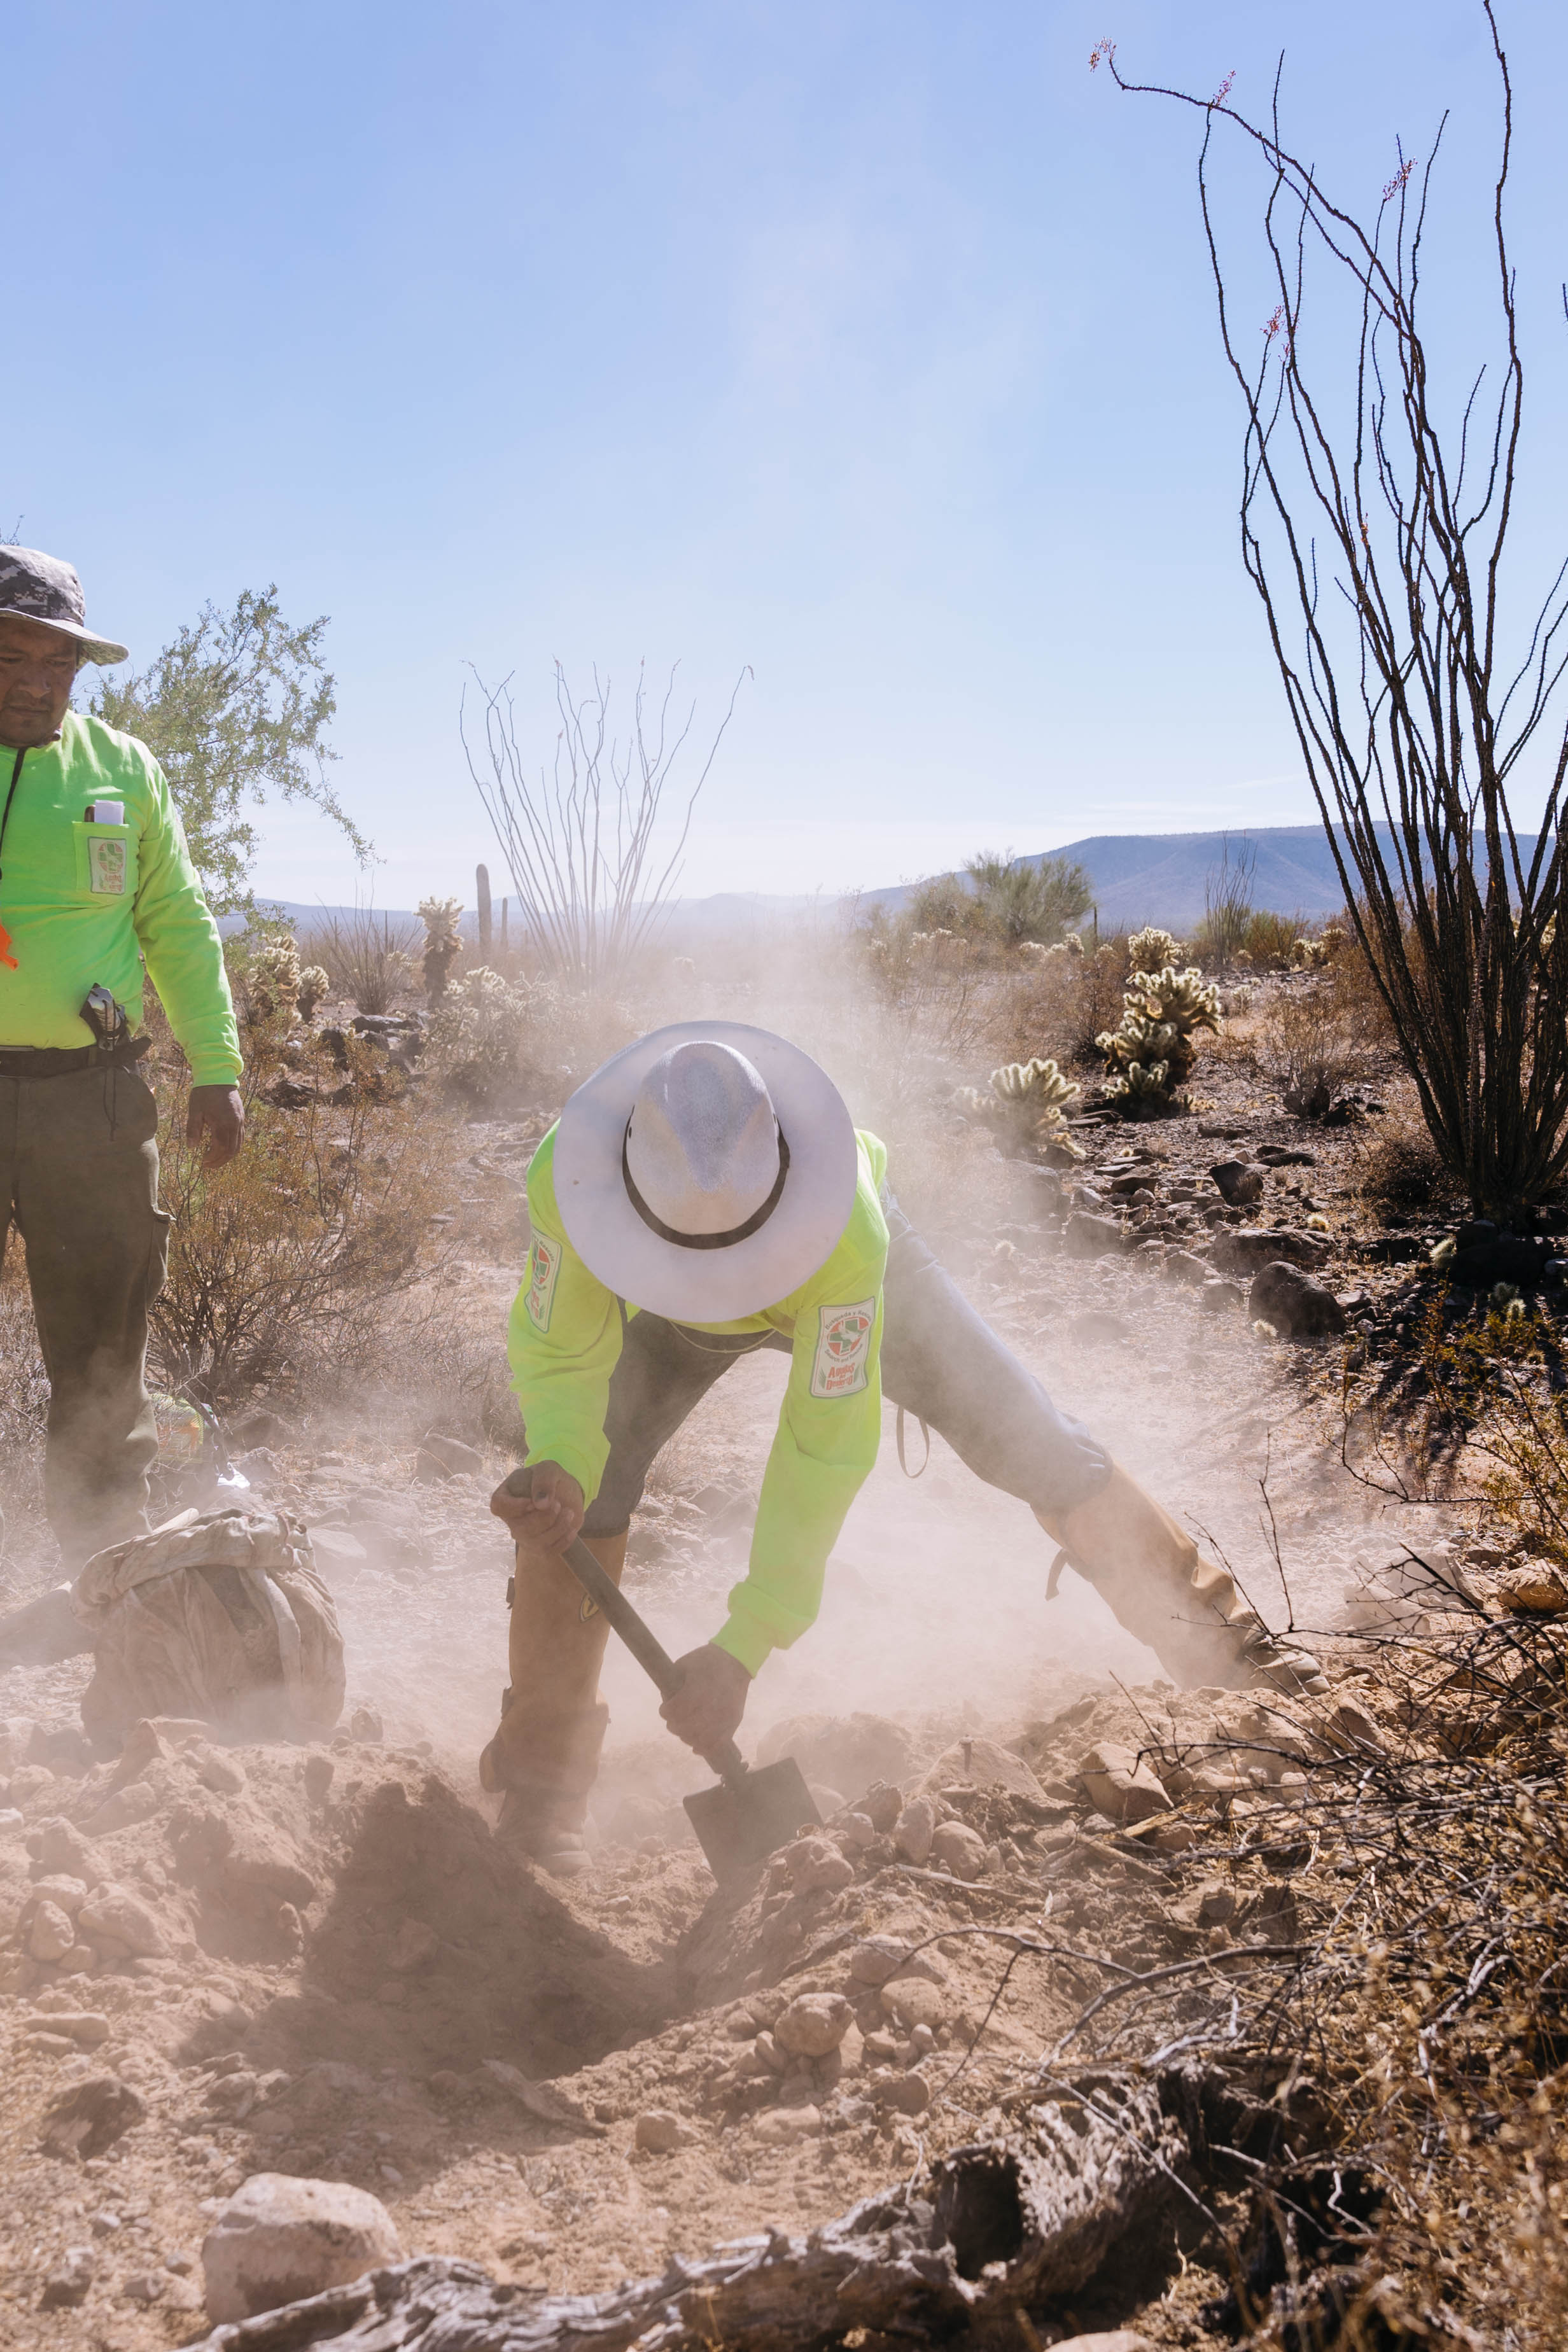 Members of Aguilas Del Desierto dig in the Sonoran Desert where they suspect the body of a migrant has been buried in a shallow grave. Most migrants who die crossing this treacherous desert have been left behind by their guides and quickly succumb to dehydration.